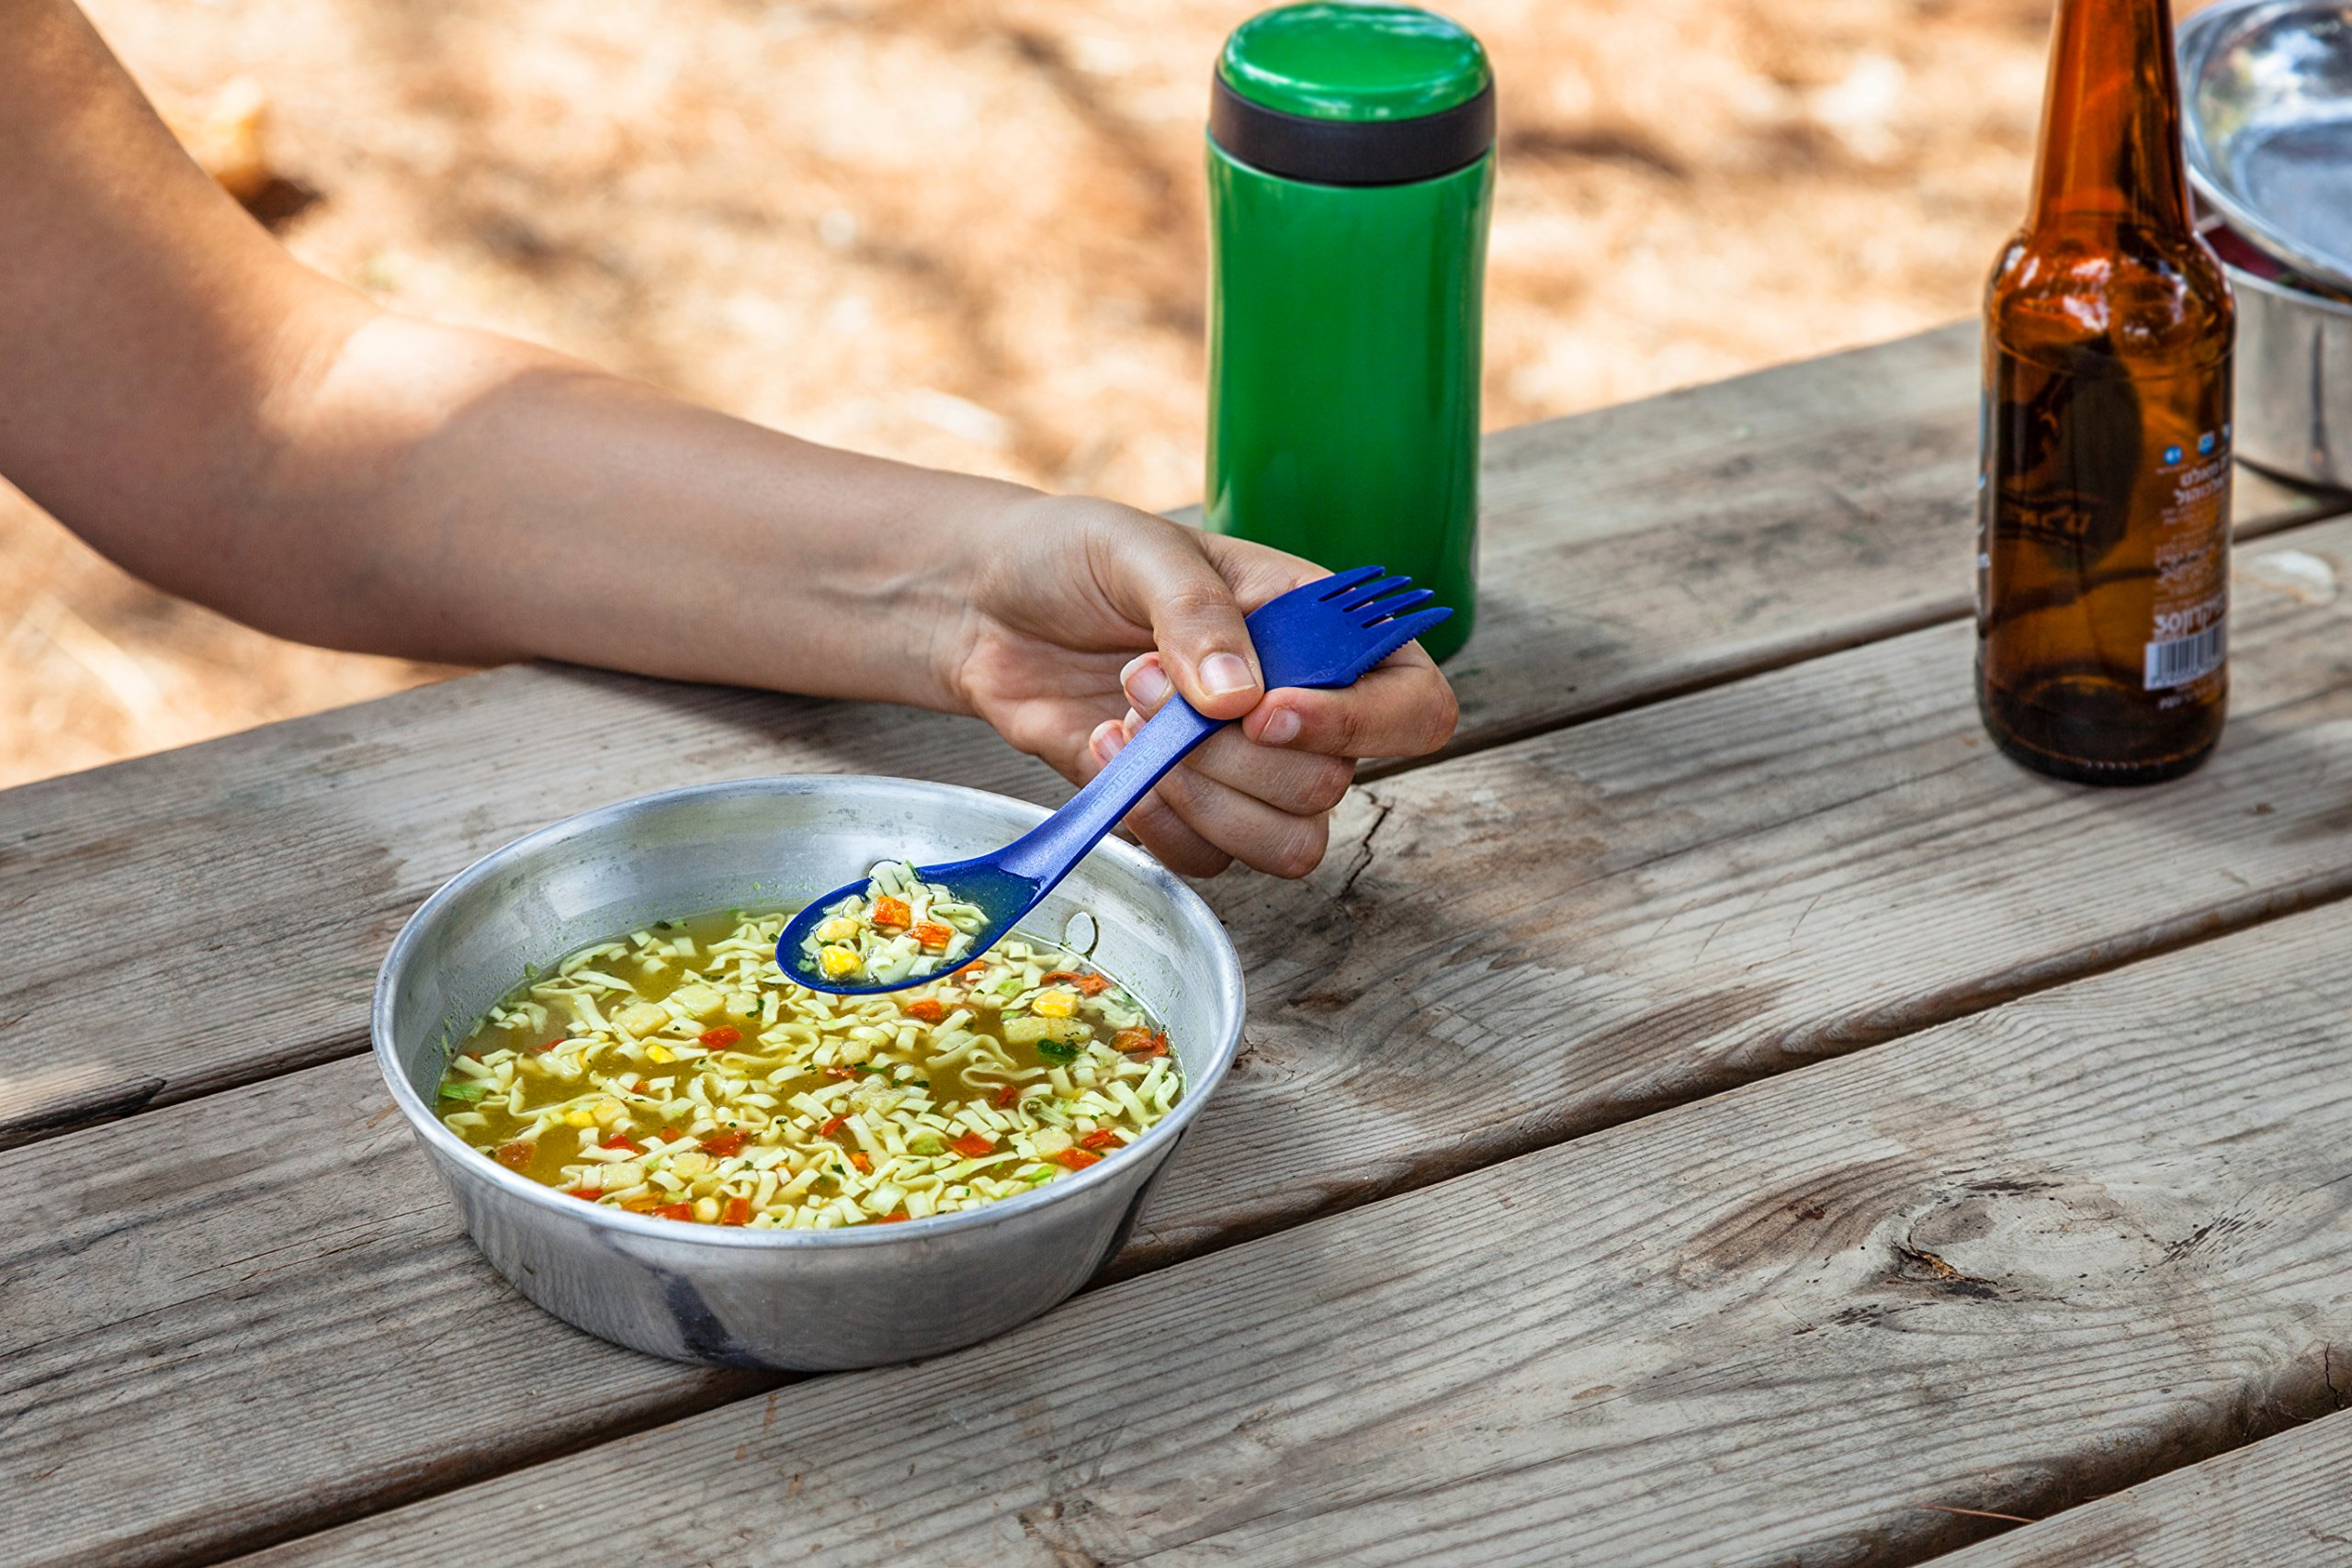 Tapirus 4 Blue Spork To Go Set | Durable & BPA Free Tritan Sporks | Spoon, Fork & Knife Combo Utensils Flatware | Mess Kit For Camping, Fishing, Hunting & Outdoor Activities | Comes In A Carrying Case by Tapirus (Image #8)